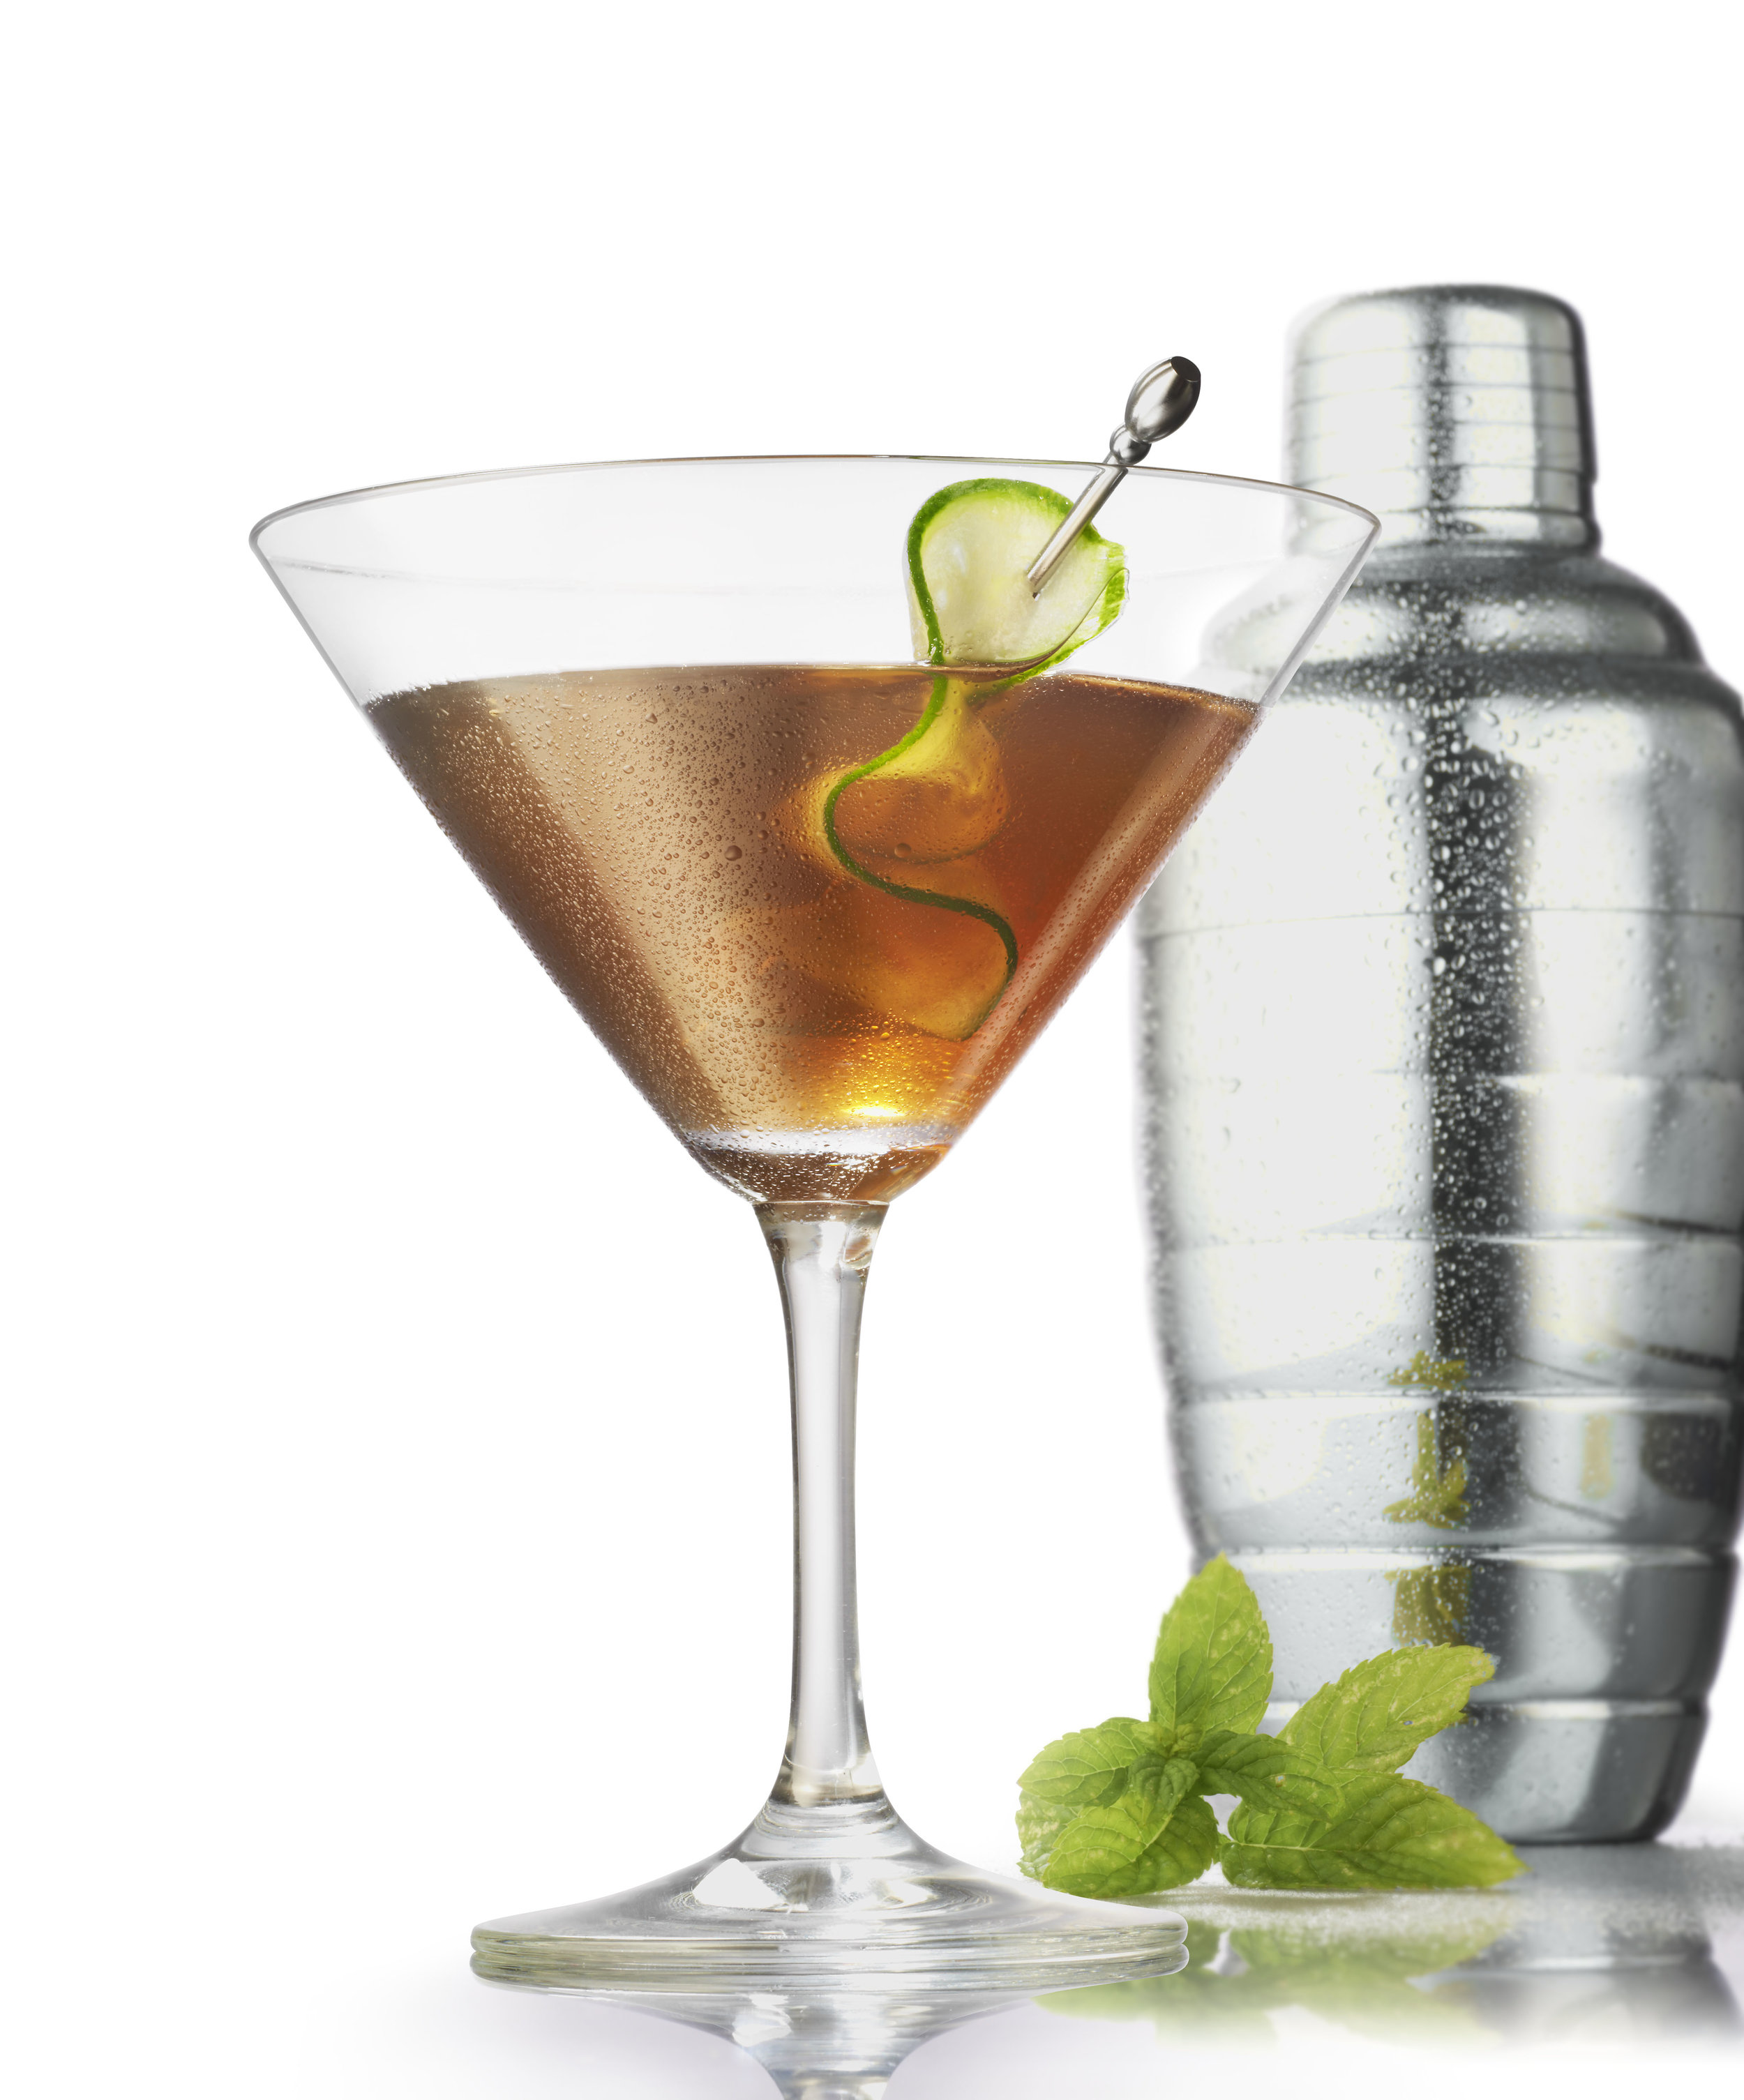 Pimm's Cup Derby Martini